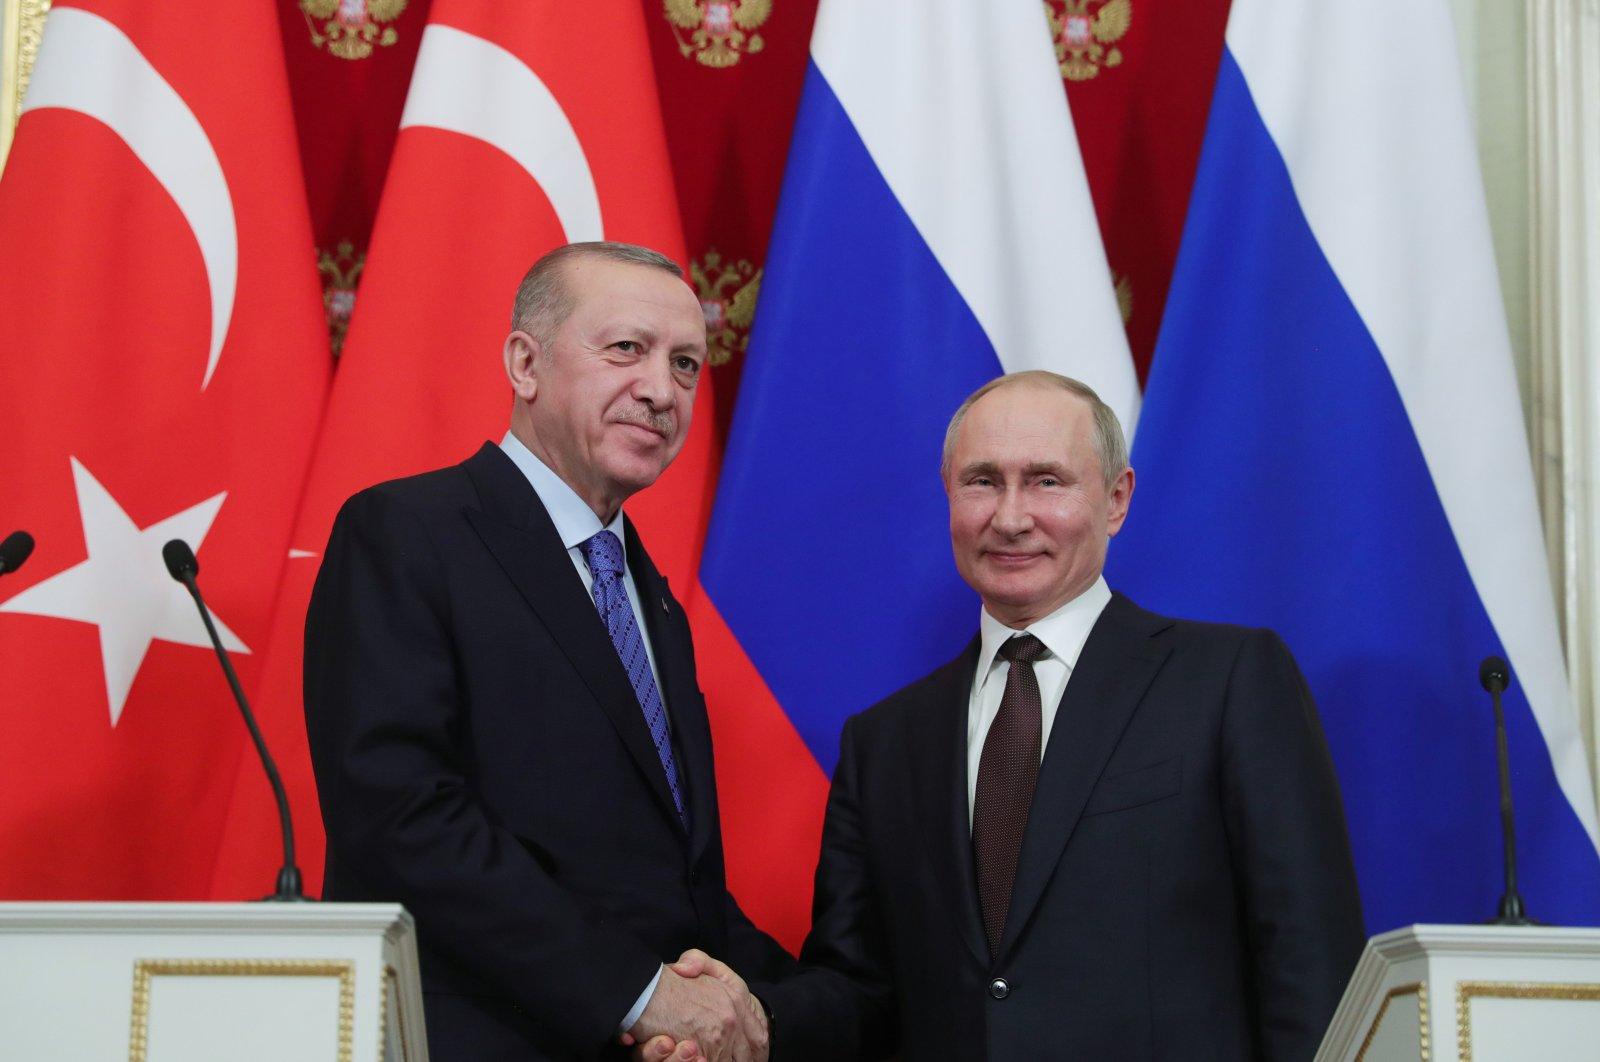 President Recep Tayyip Erdoğan shakes hand with Russian President Vladimir Putin following a joint press conference in Moscow, March 6, 2020. (AA)